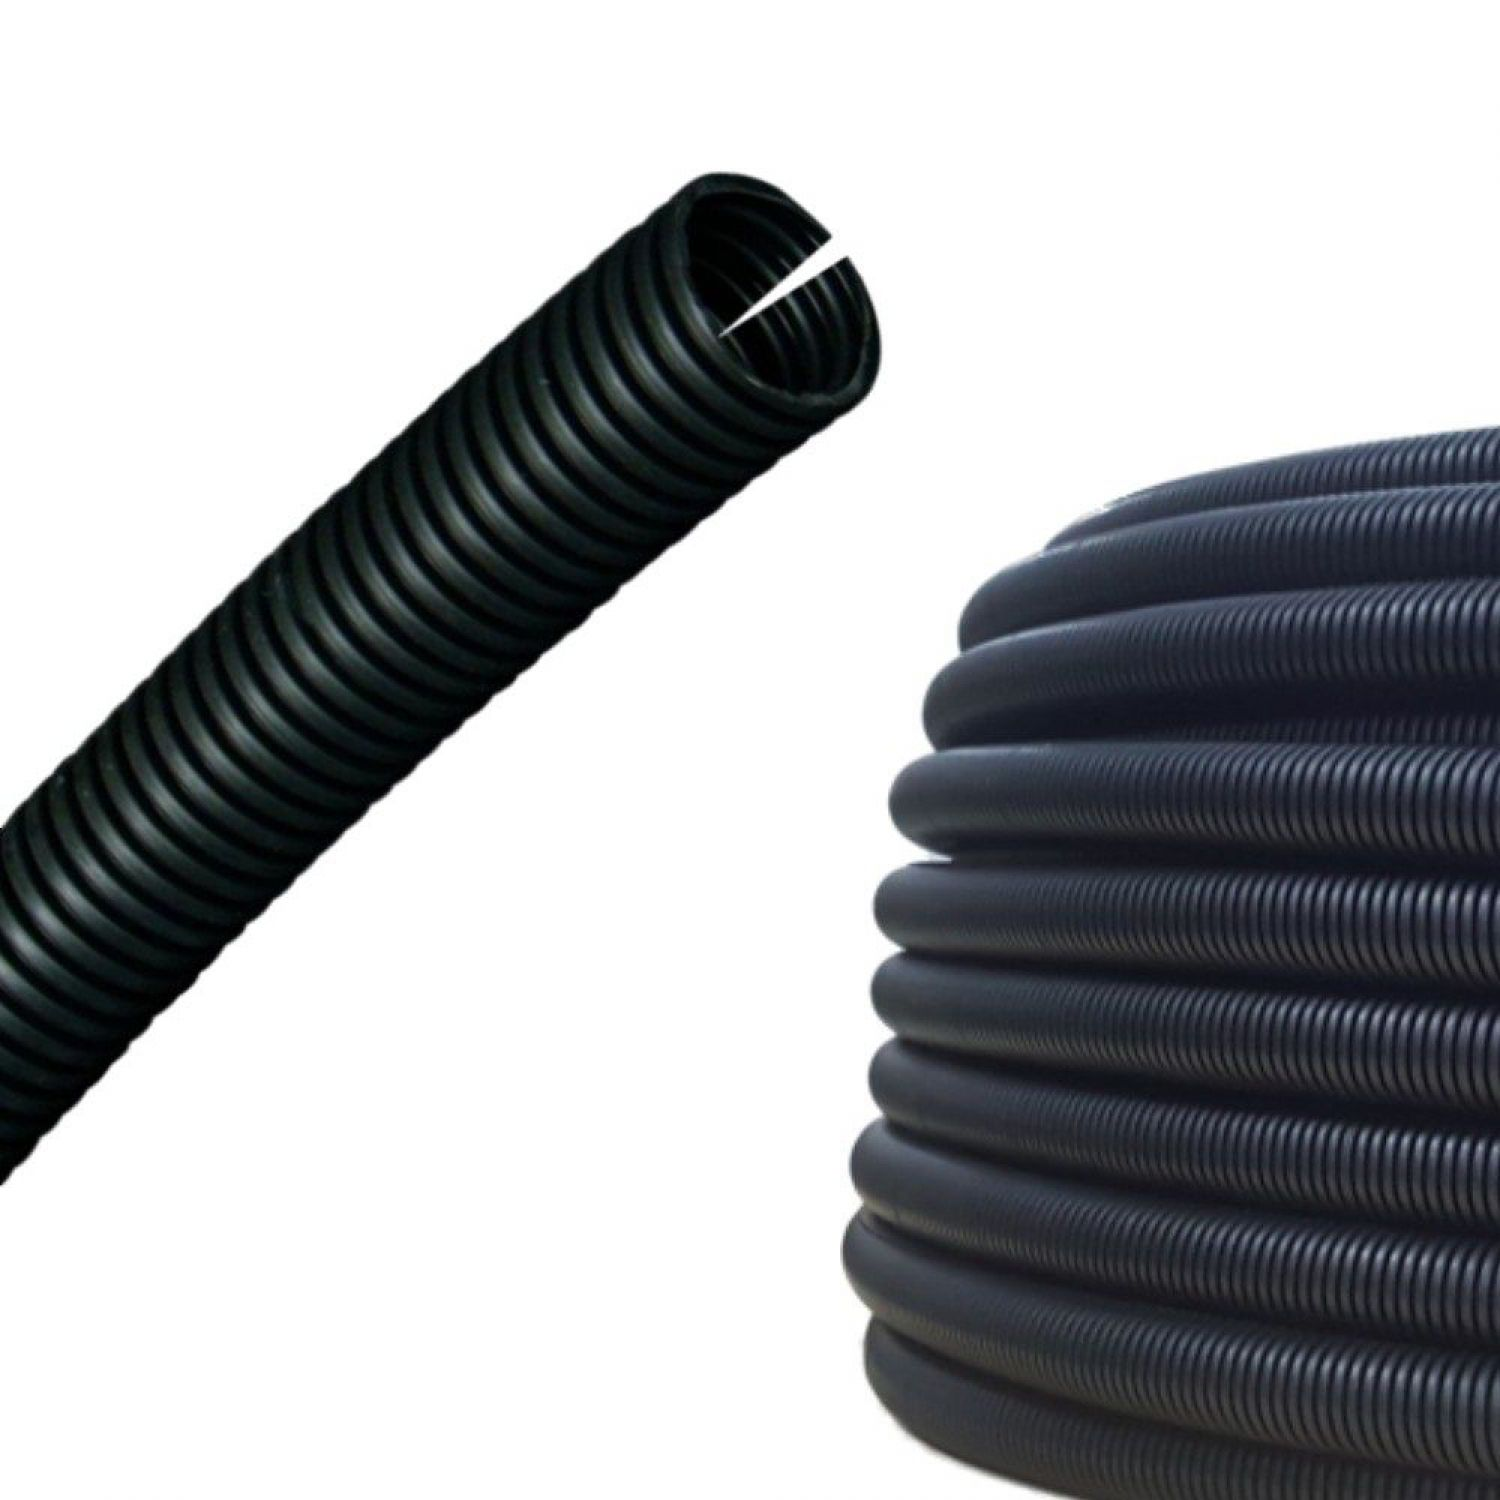 AUPROTEC Corrugated Tube 4.5mm Slit Wire Loom Conduit M7 Cable ...